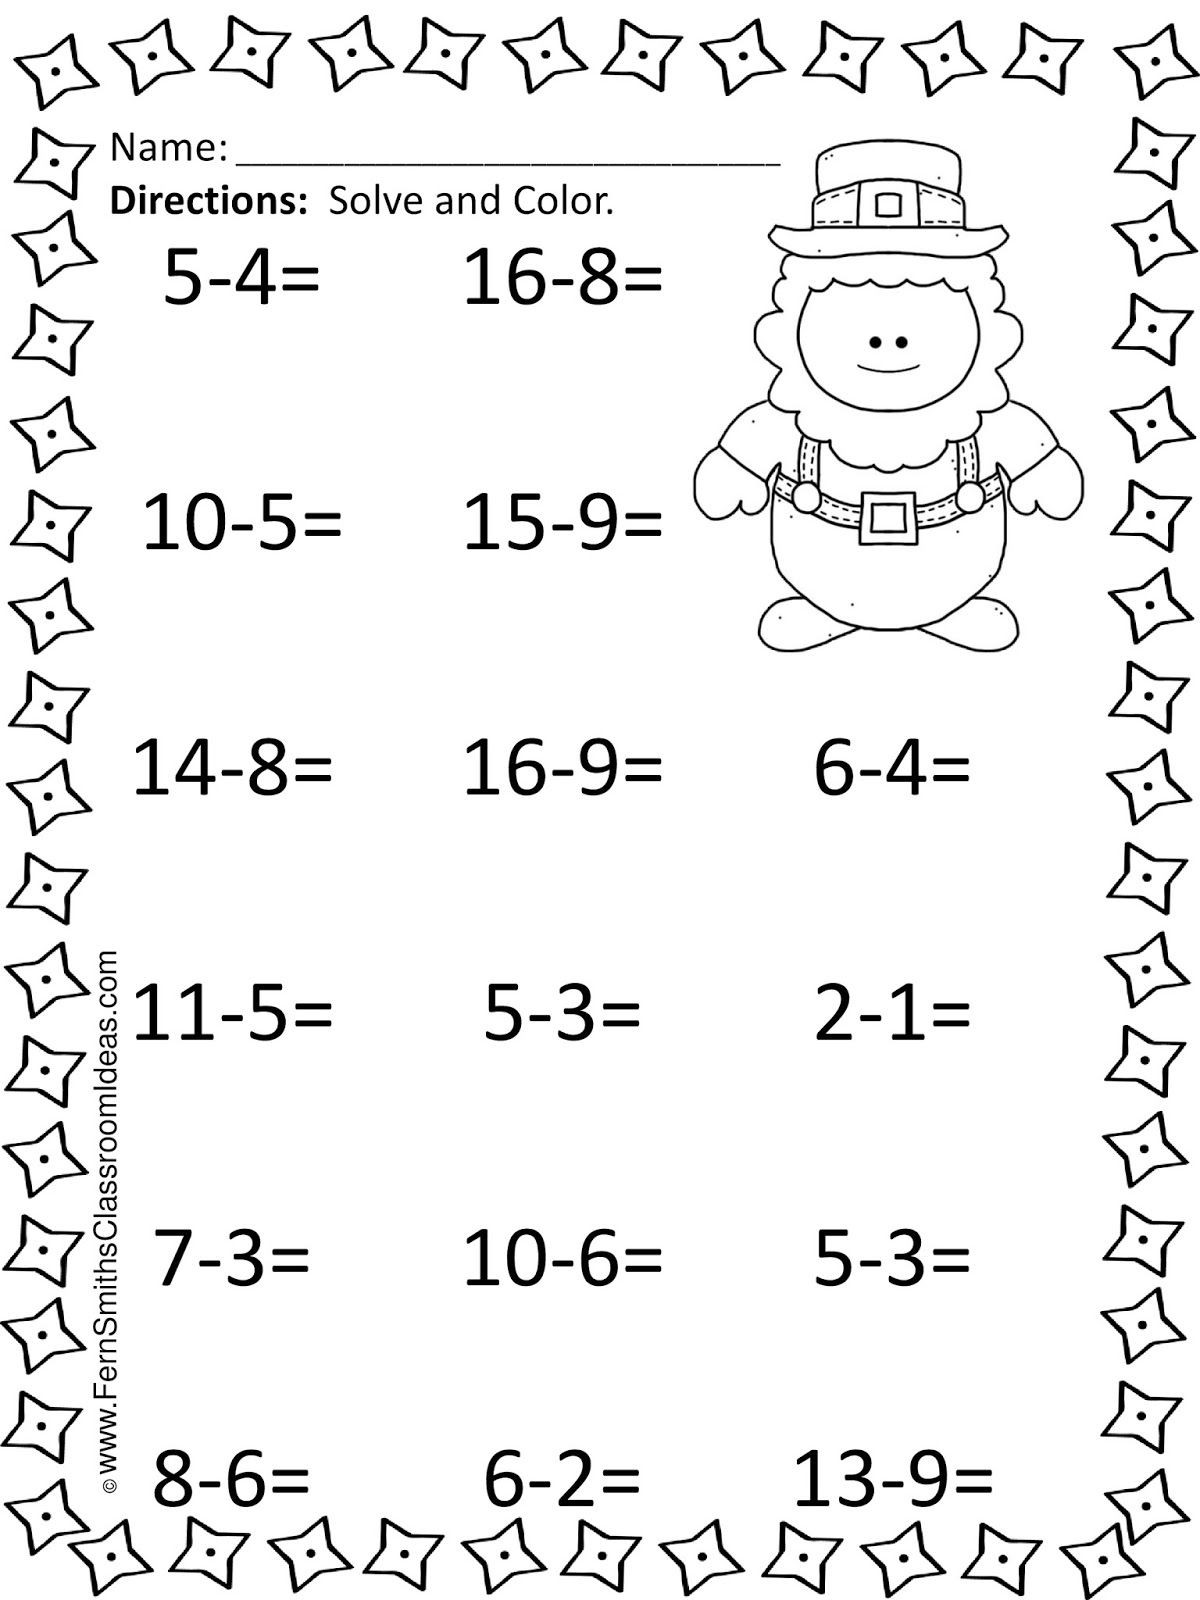 Subtraction Worksheet for 1st Grade St Patrick S Day Mixed Subtraction Task Cards and